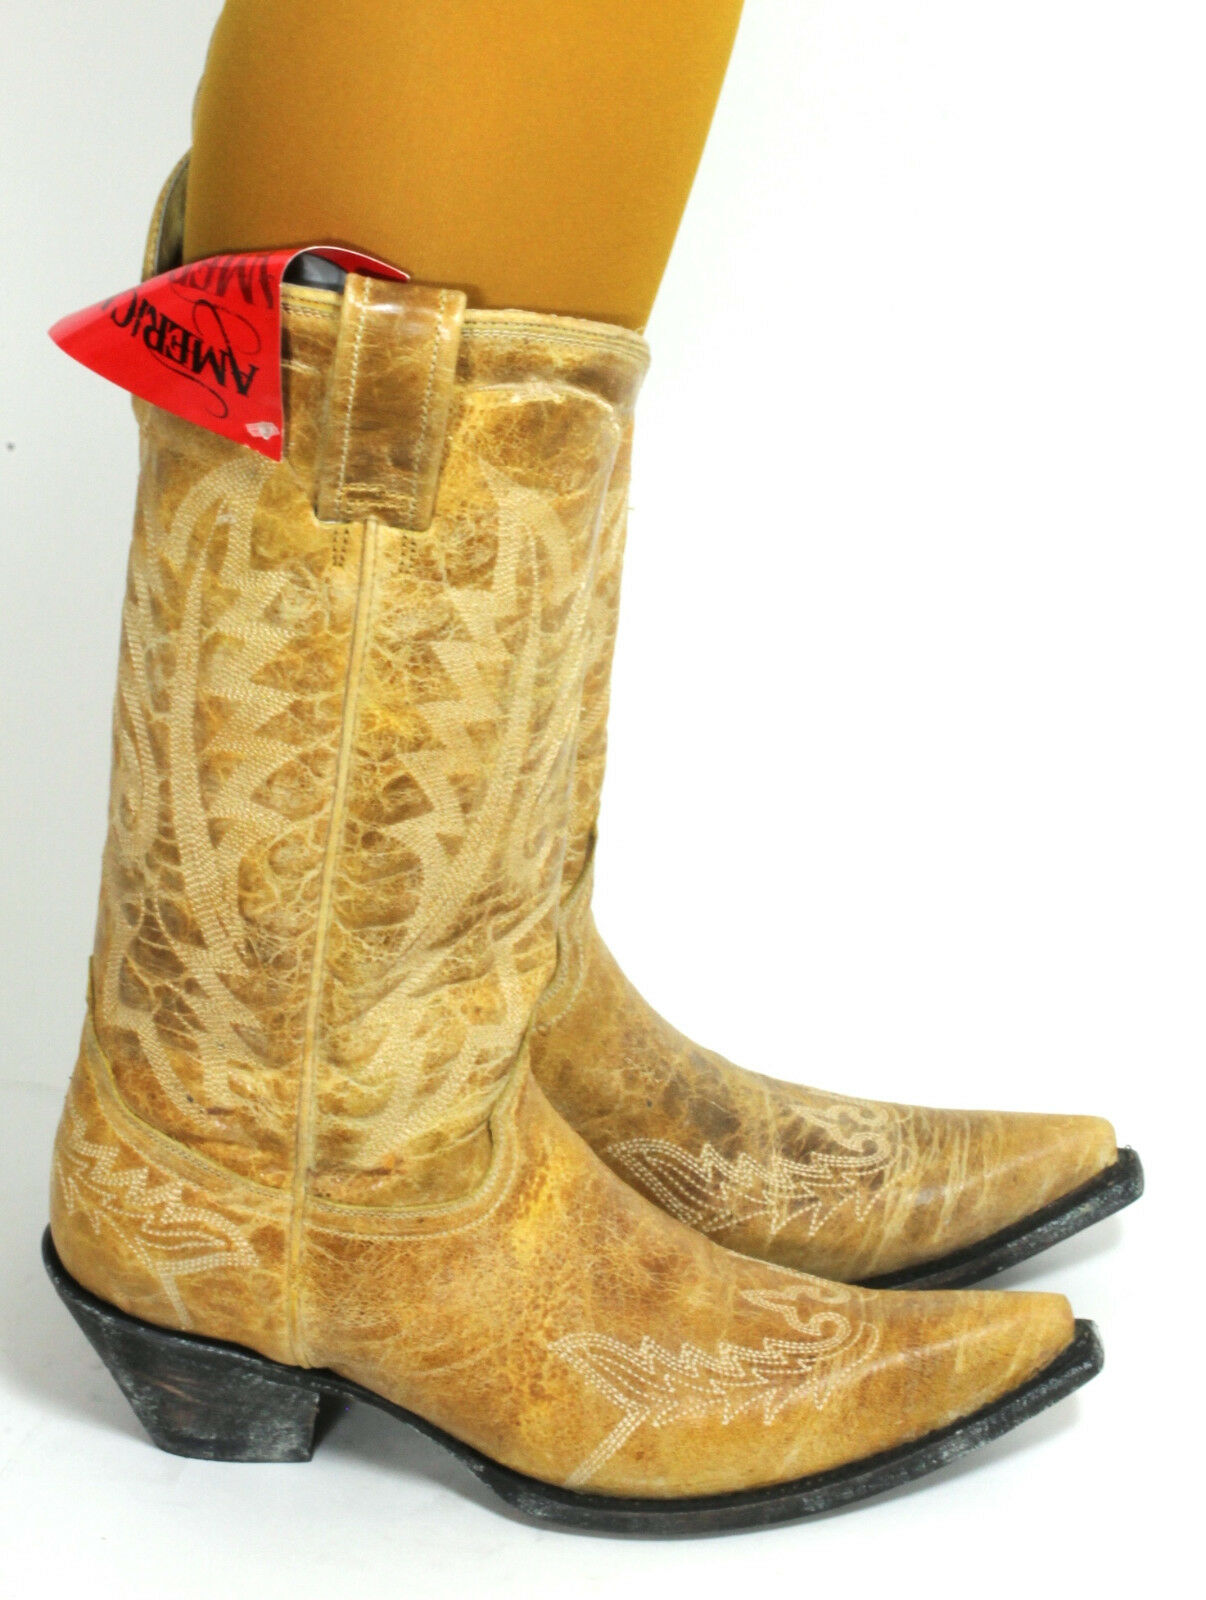 23 Cowboystiefel Westernstiefel Westernstiefel Westernstiefel American Bull Catalan Style Stiefel Fashion 39 4d37ad